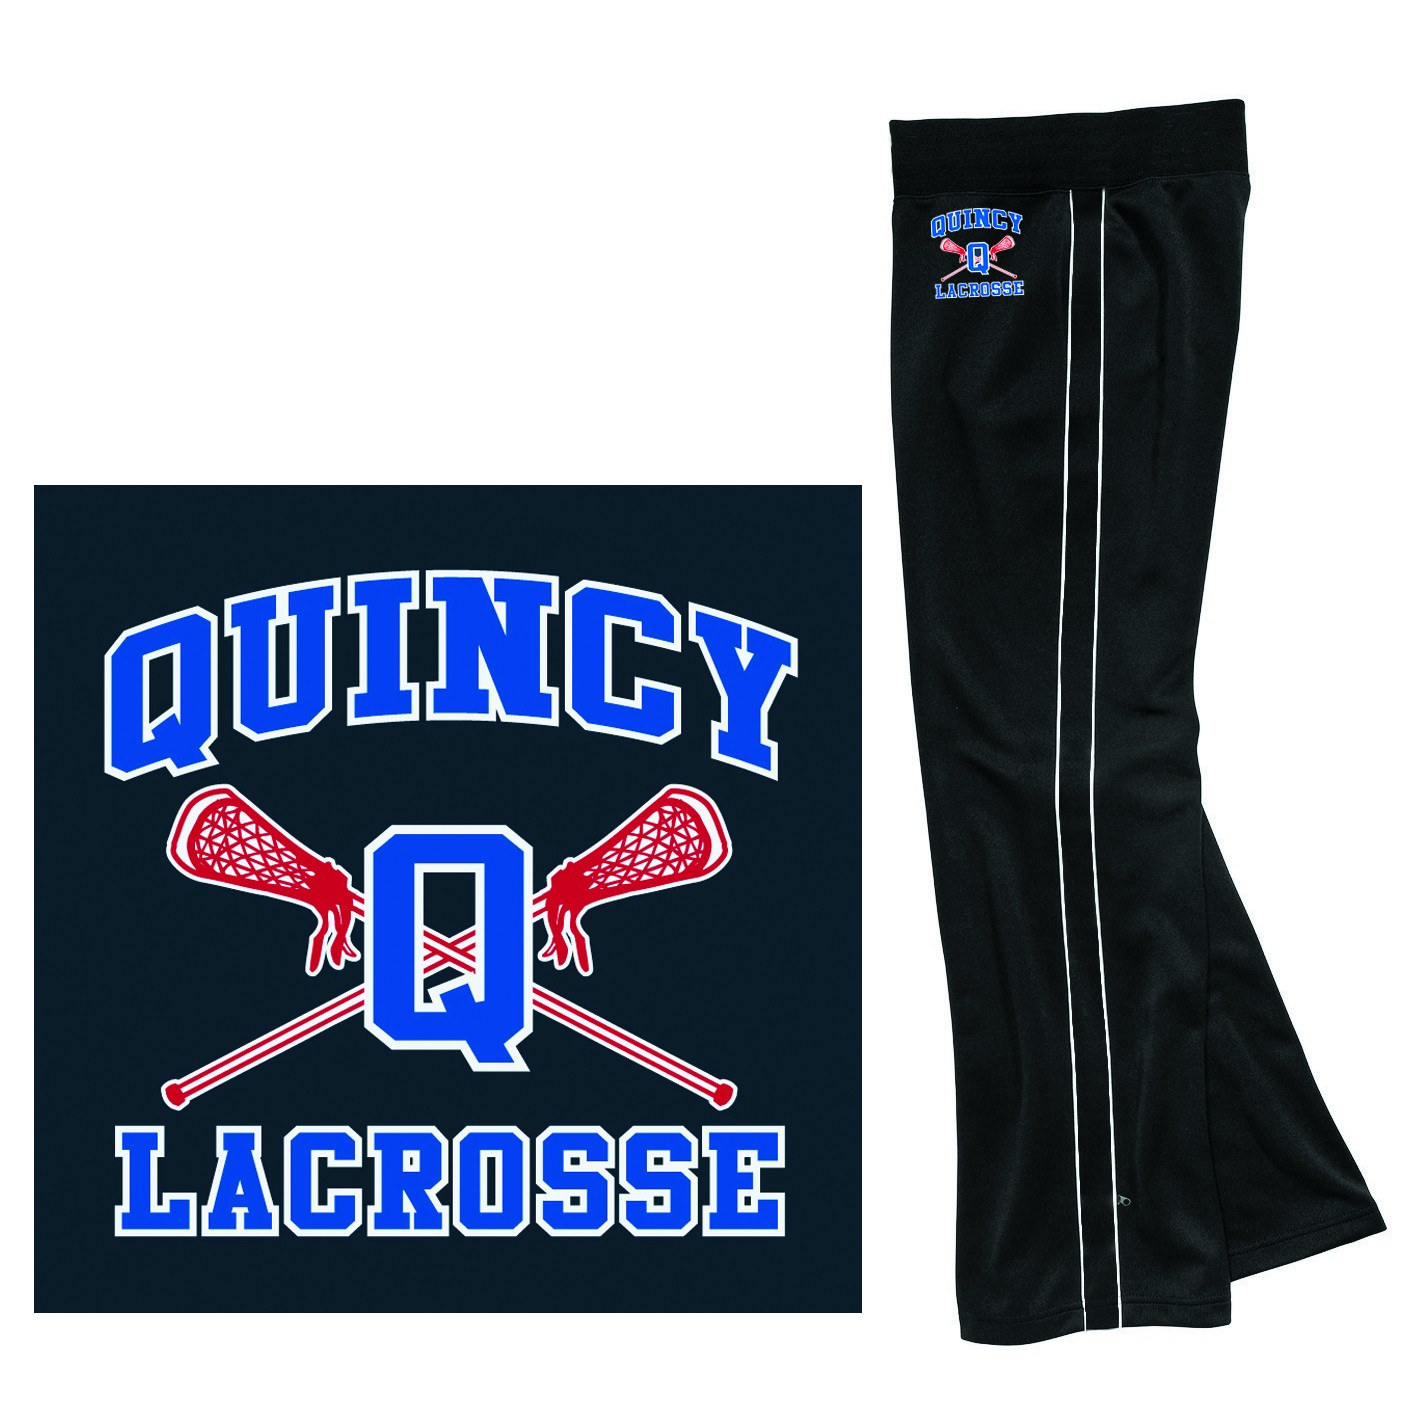 Quincy Lacrosse Charles River Girls' Olympian Pant 4985